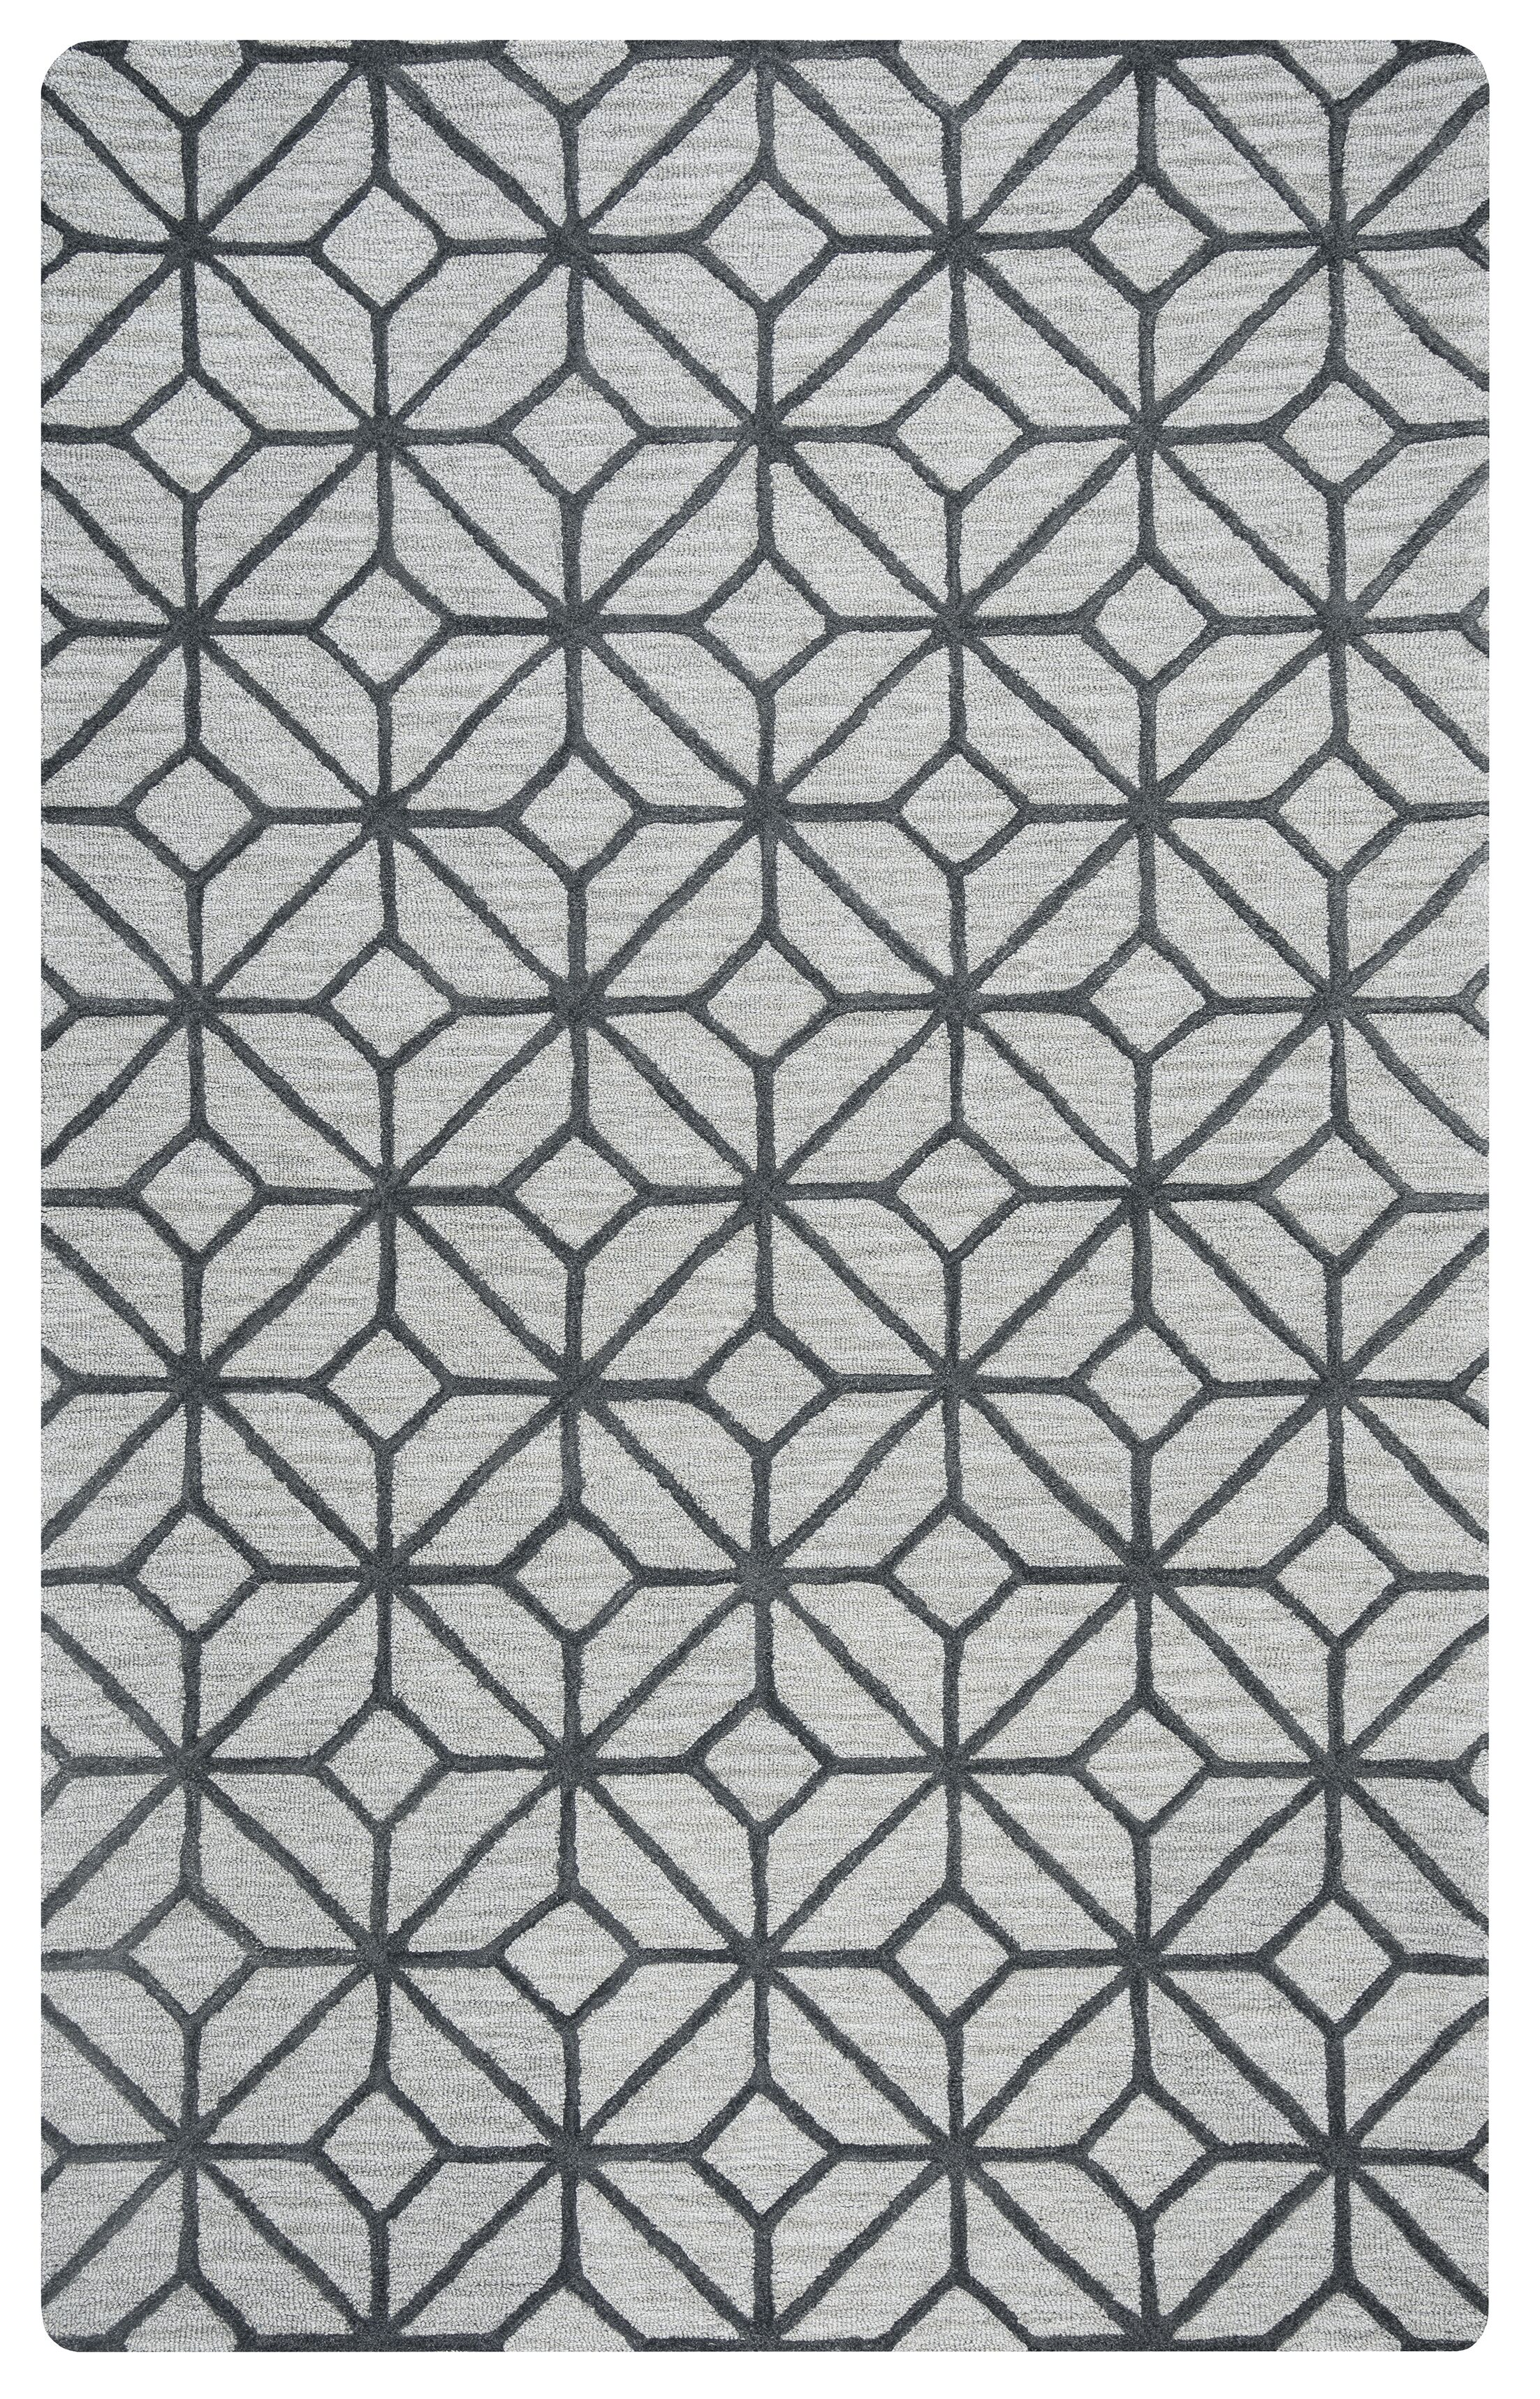 Wright Hand-Tufted Gray Area Rug Rug Size: Rectangle 8' x 10'